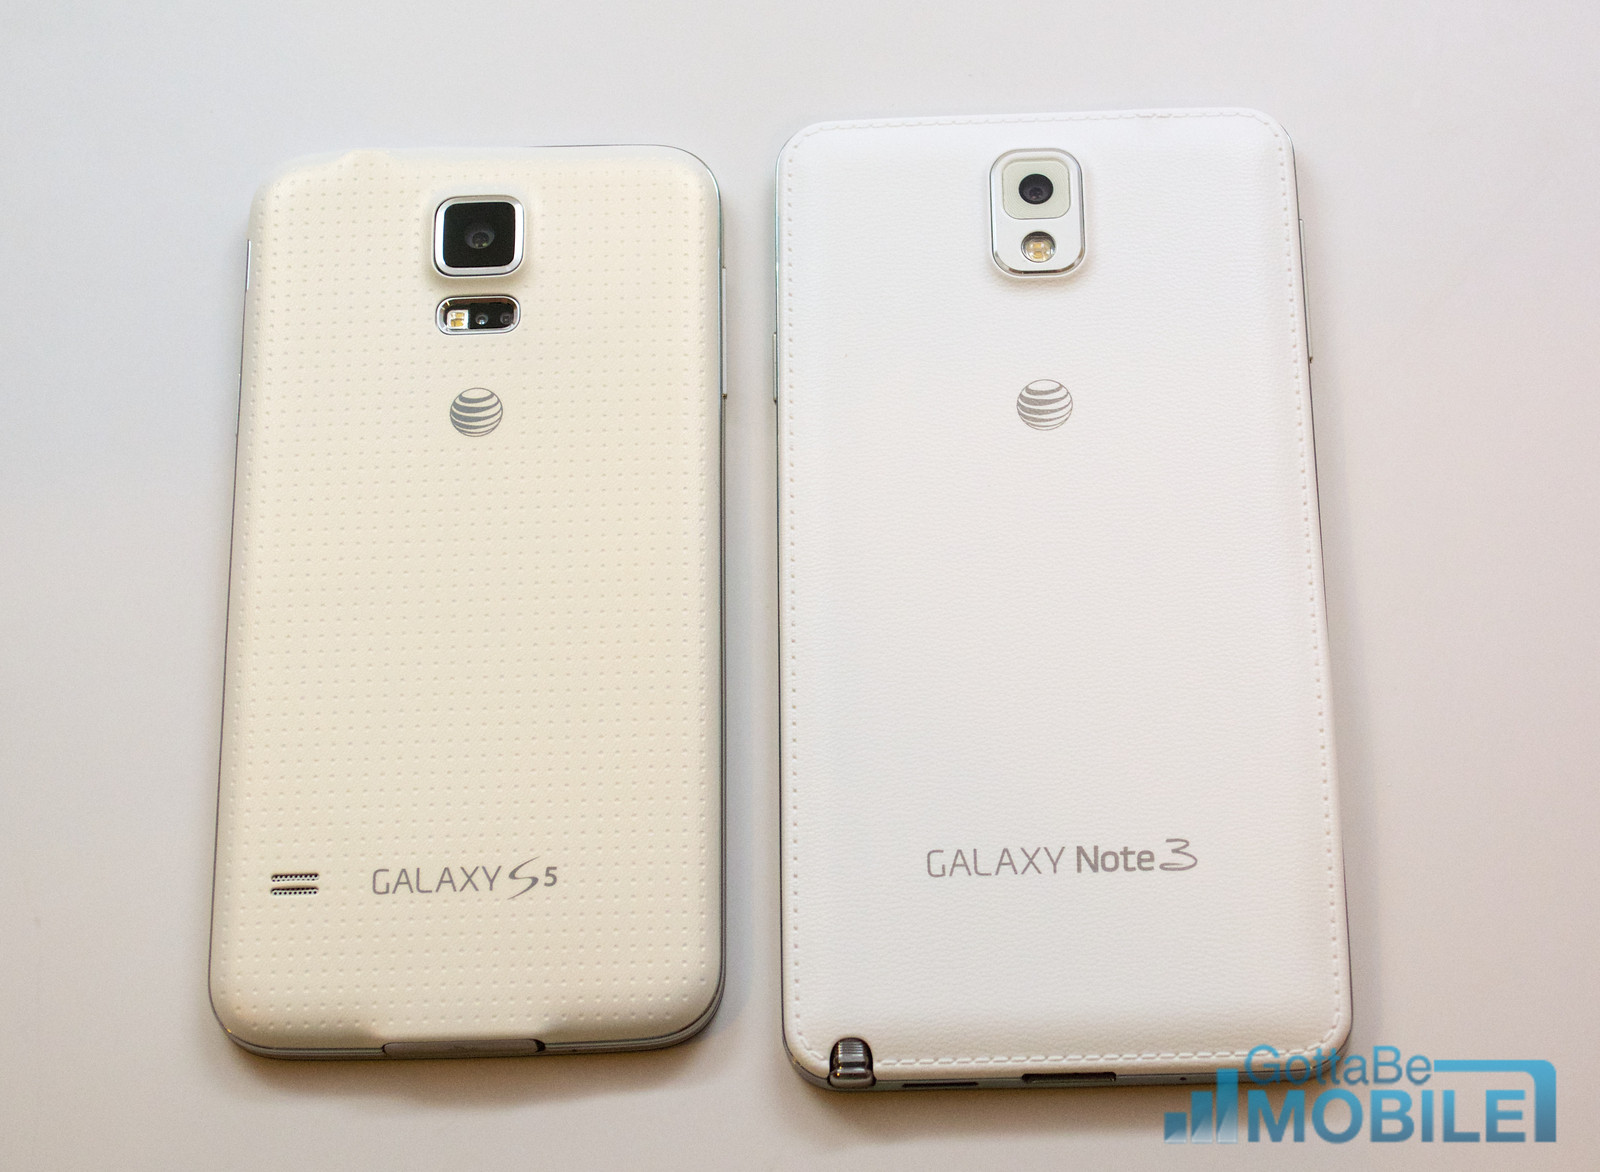 Galaxy note 3 release date in Perth